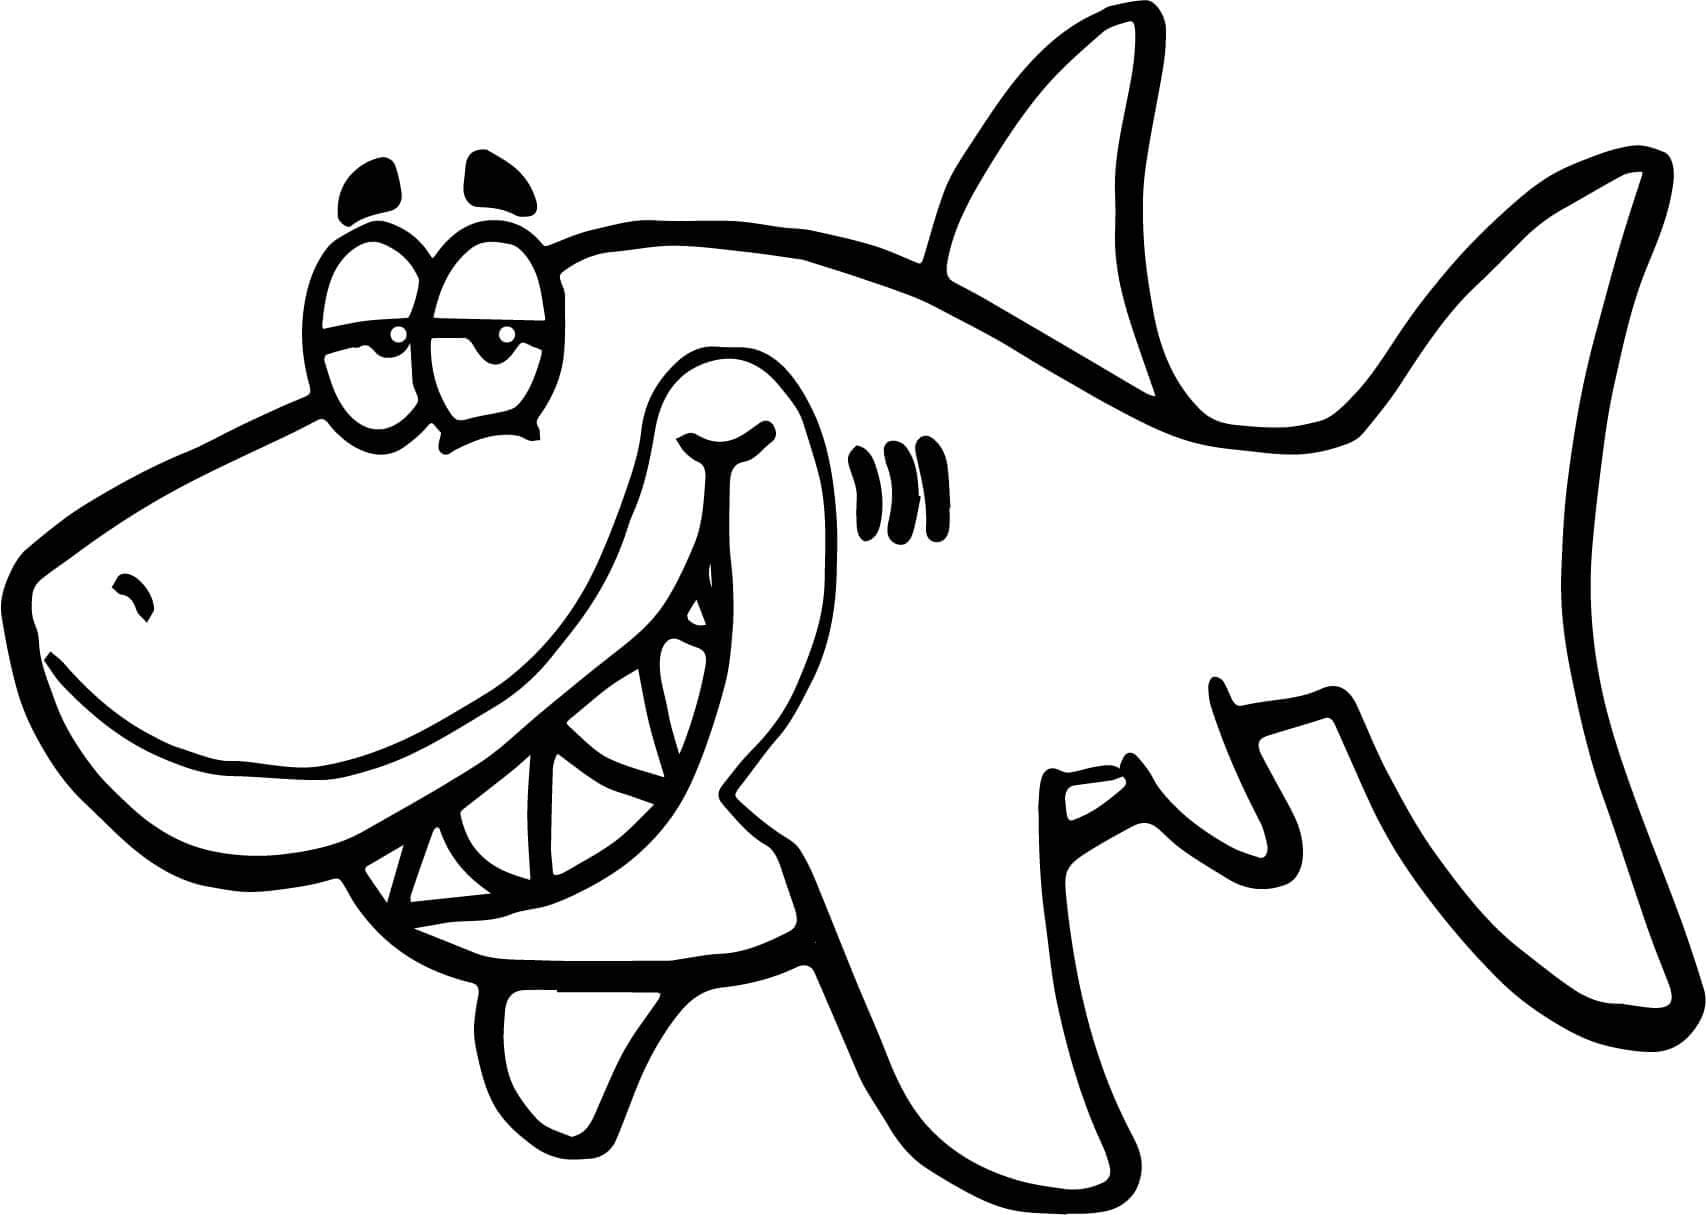 coloring page shark free printable shark coloring pages for kids animal place page coloring shark